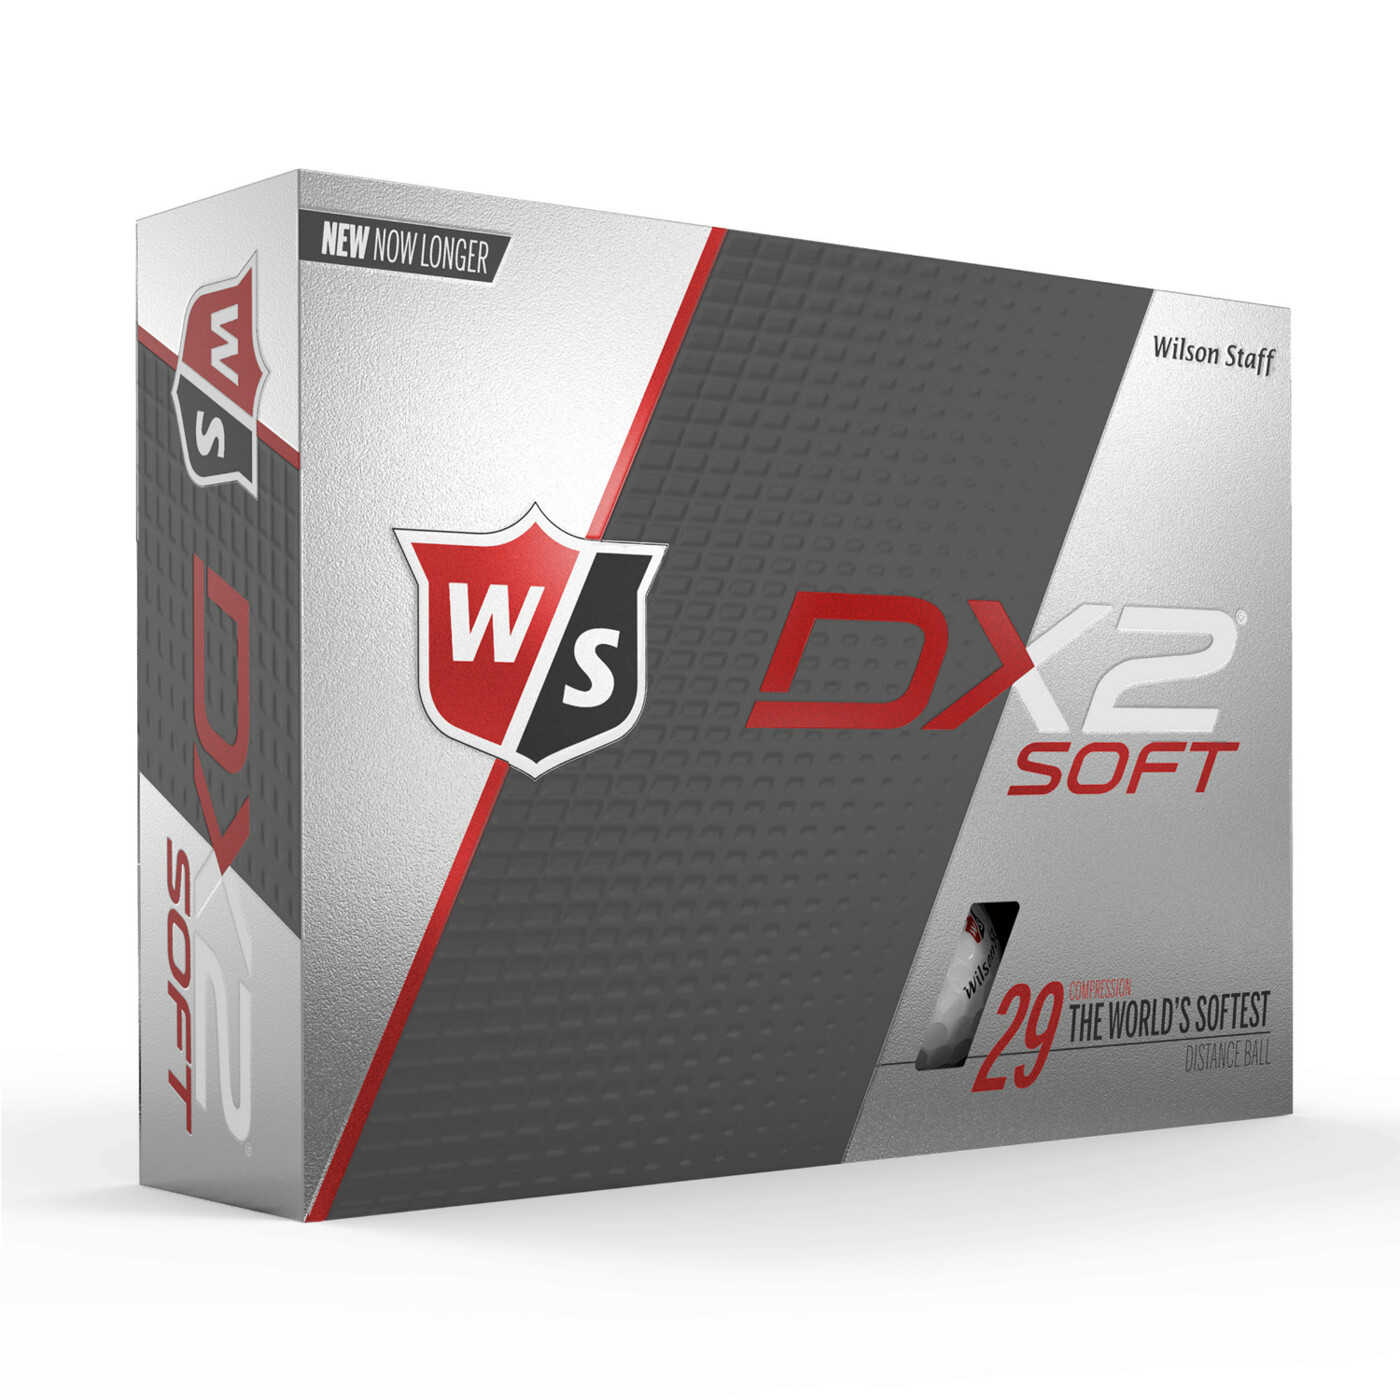 GOLFBÄLLE DX2 SOFT 12-BALL WH WILSON